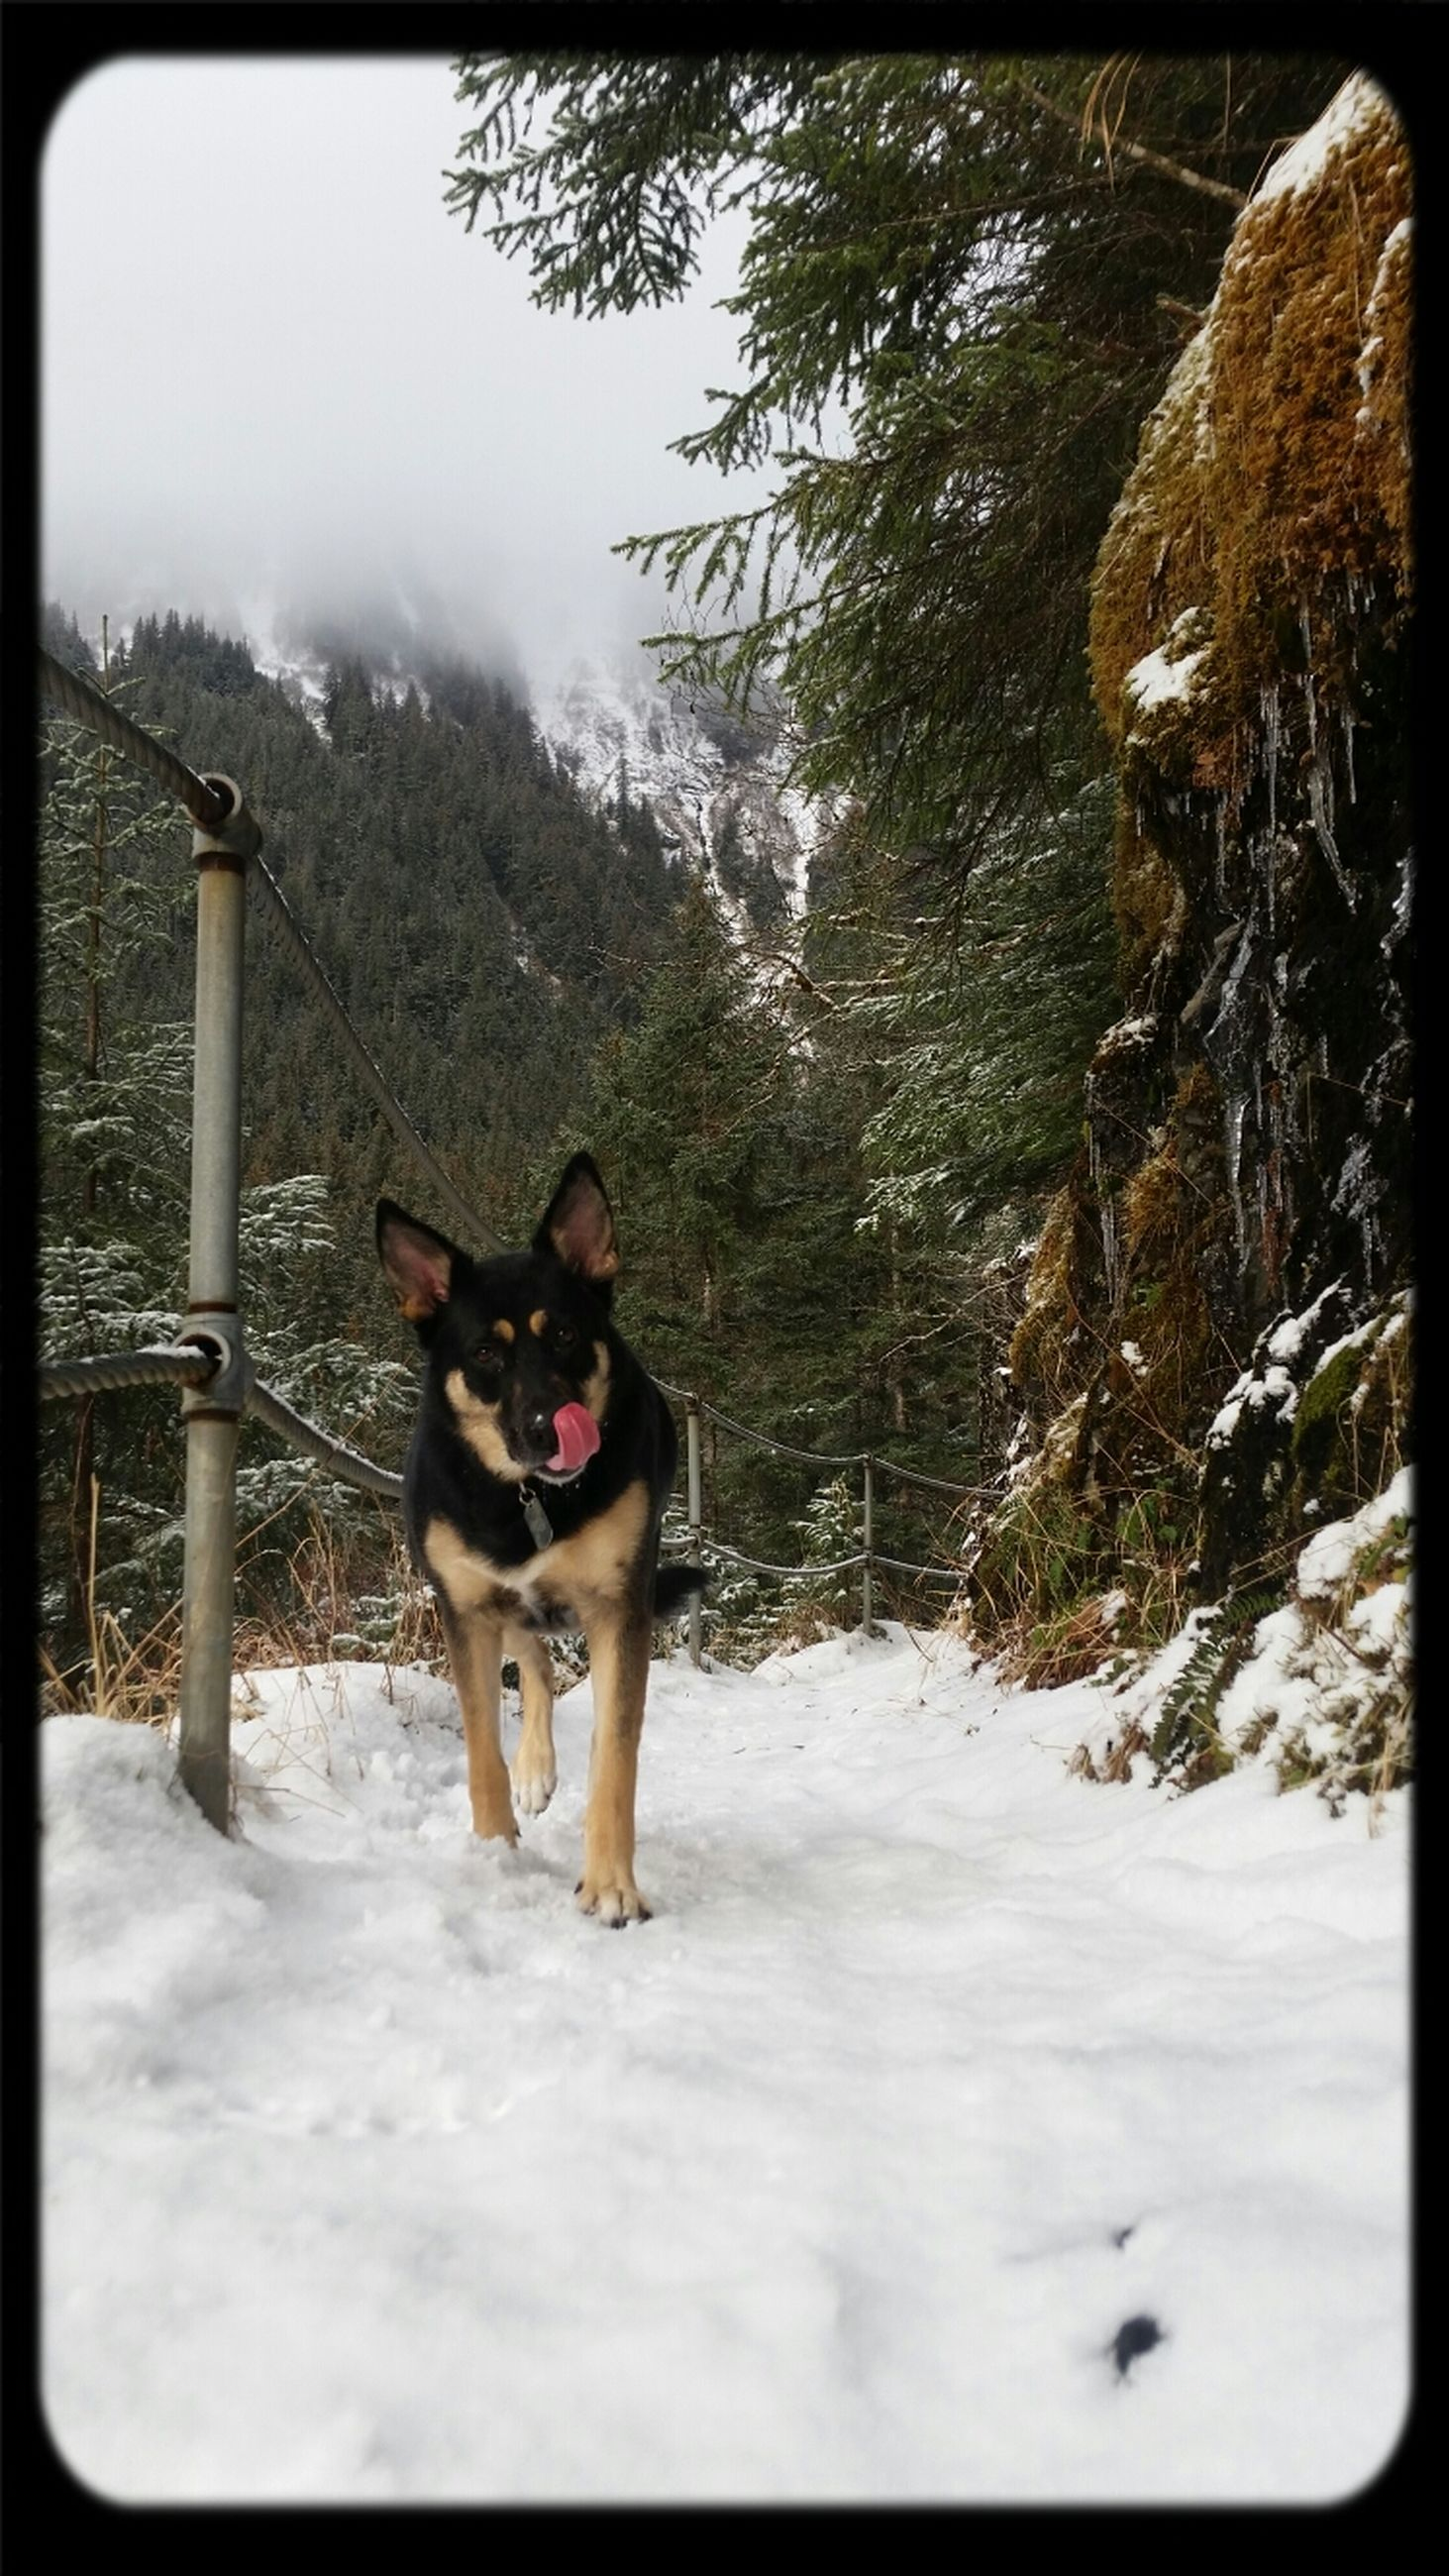 snow, winter, cold temperature, season, weather, transfer print, domestic animals, covering, dog, landscape, auto post production filter, nature, tranquil scene, tree, tranquility, pets, field, full length, covered, mountain